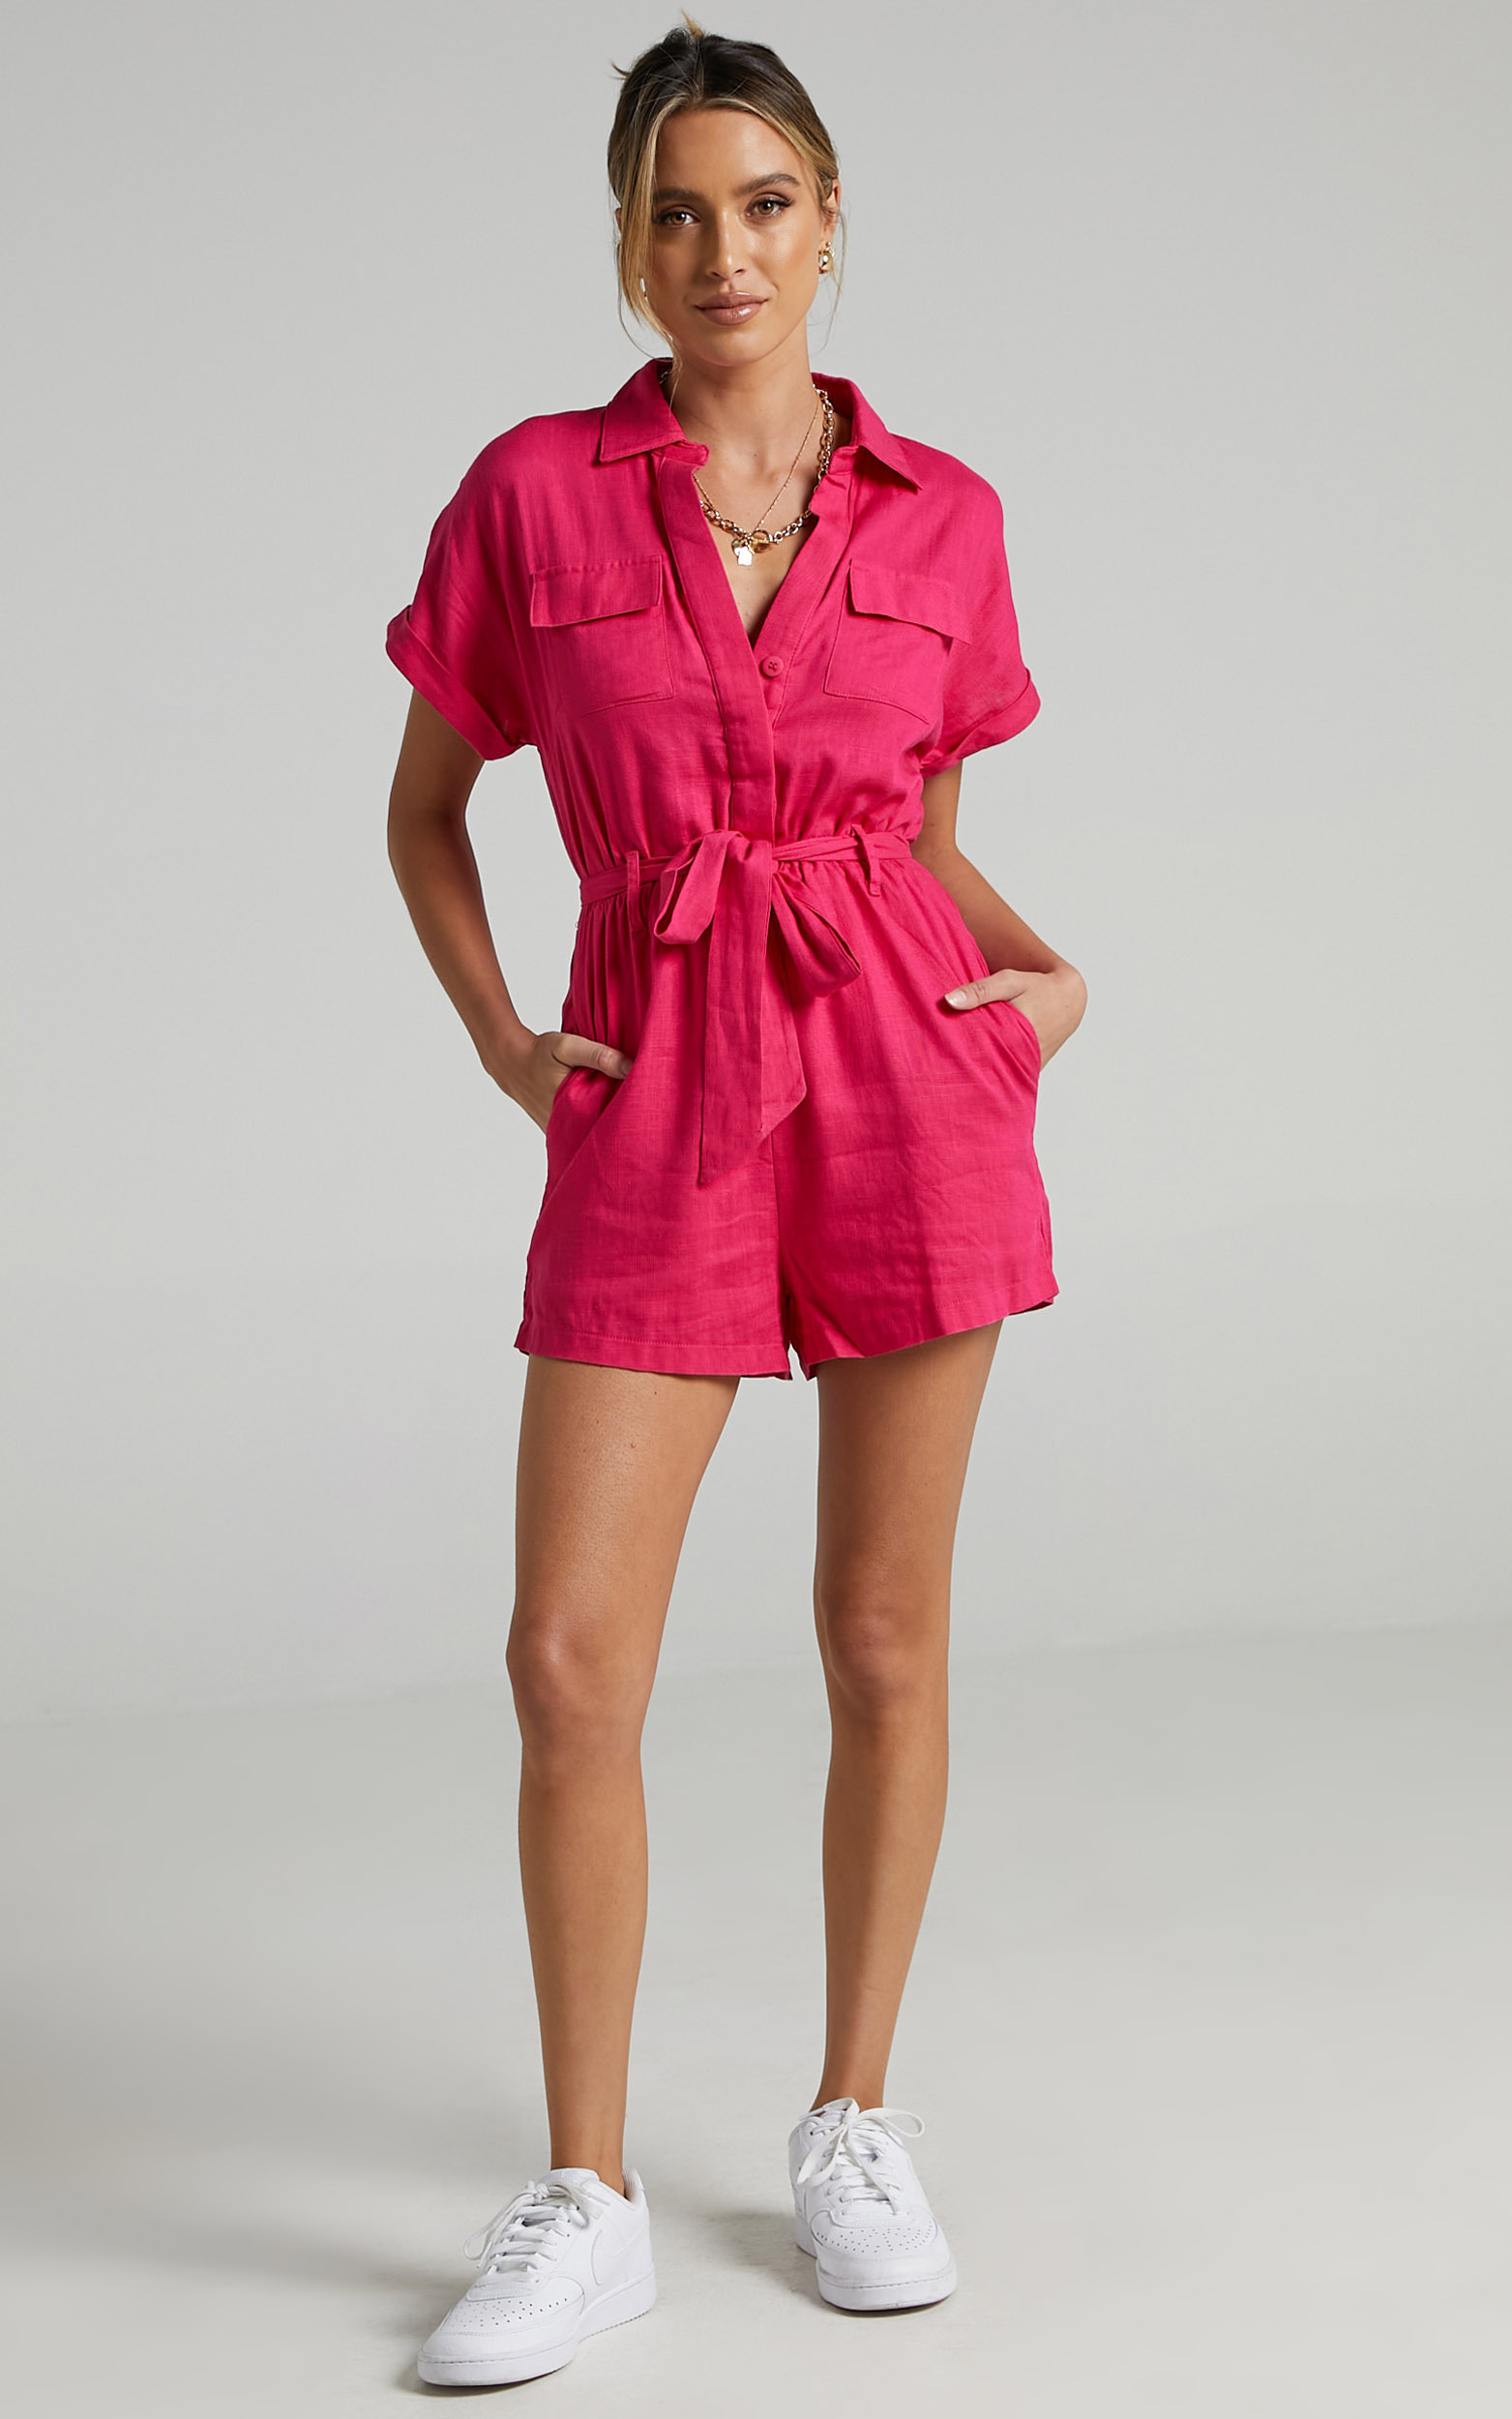 Zarina Belted Playsuit in Hot Pink - 06, PNK4, hi-res image number null